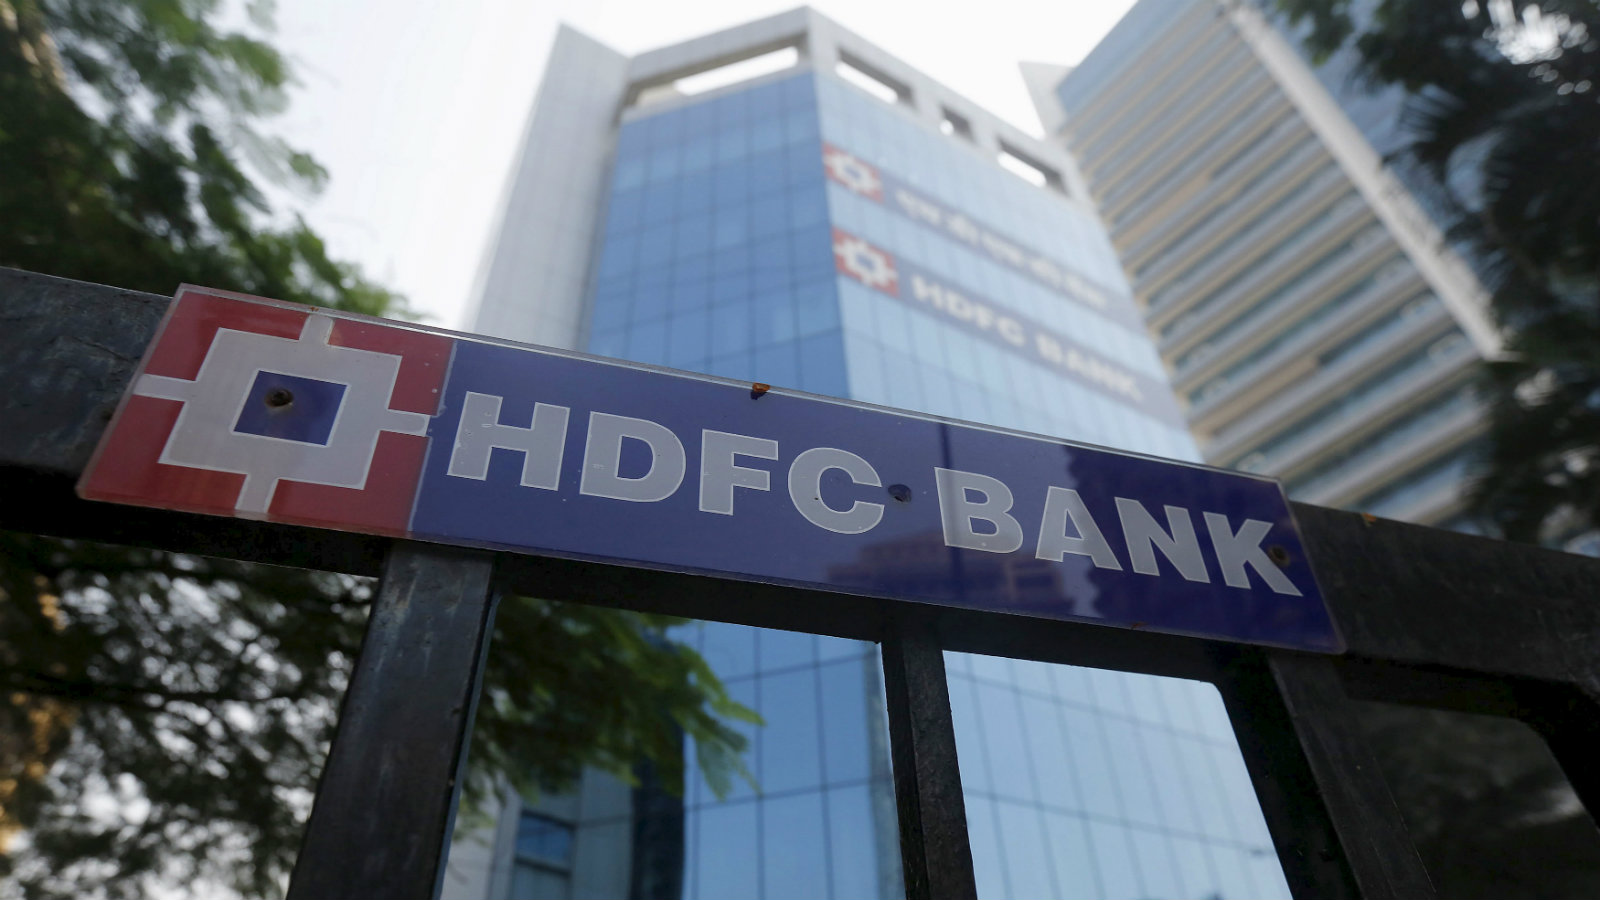 HDFC Bank replaces a bruised ICICI Bank to become India's